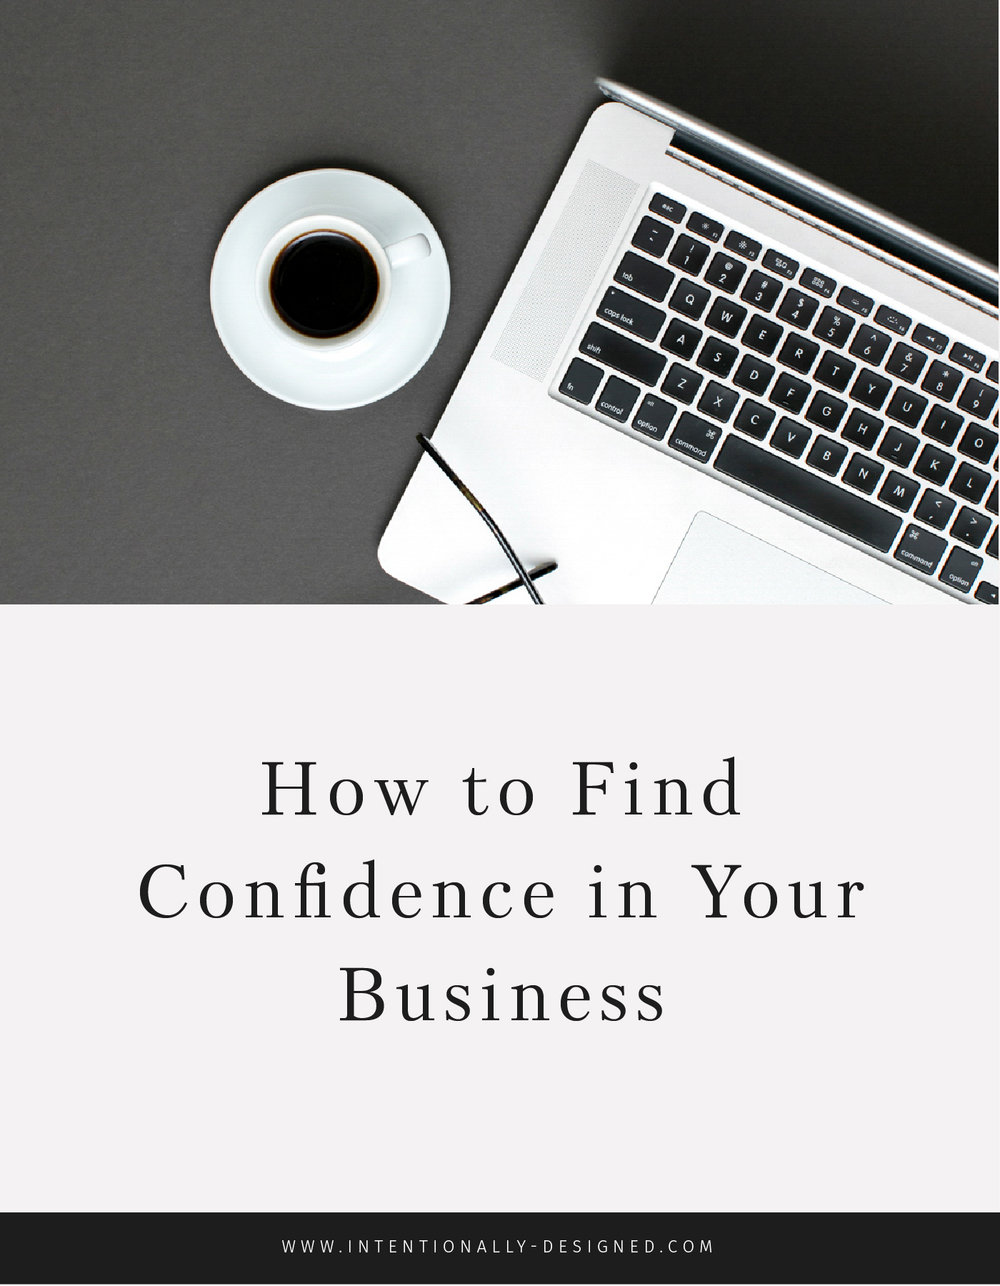 How to find confidence in your business